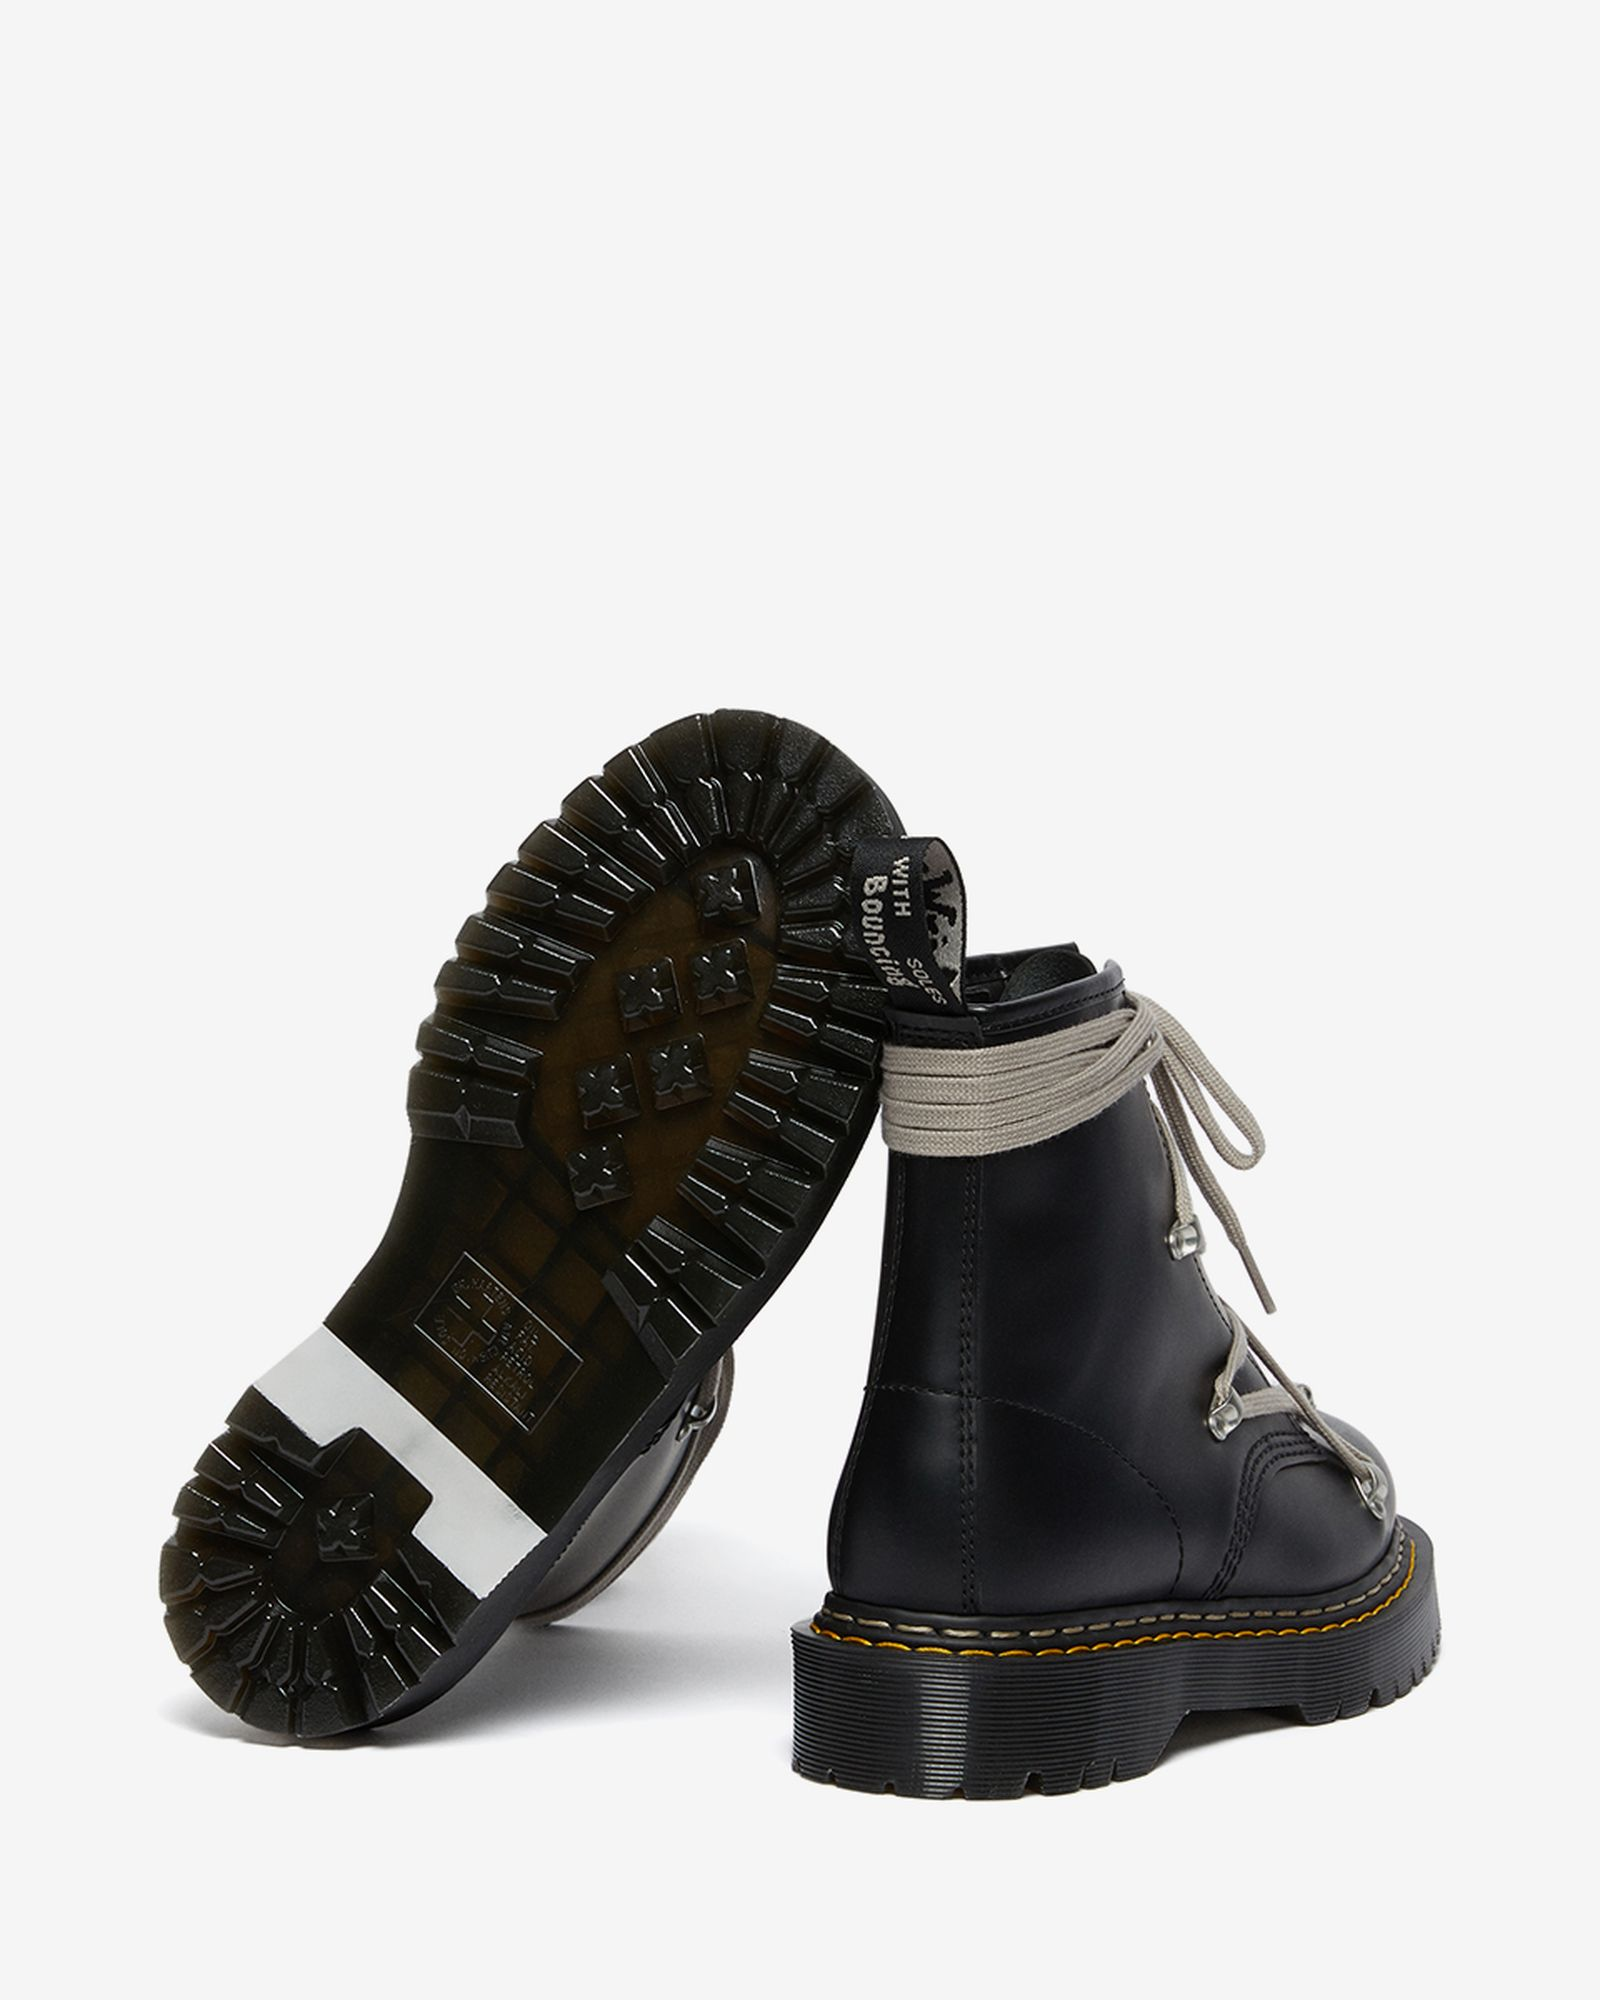 rick-owens-dr-martens-1460-bex-release-date-price-08